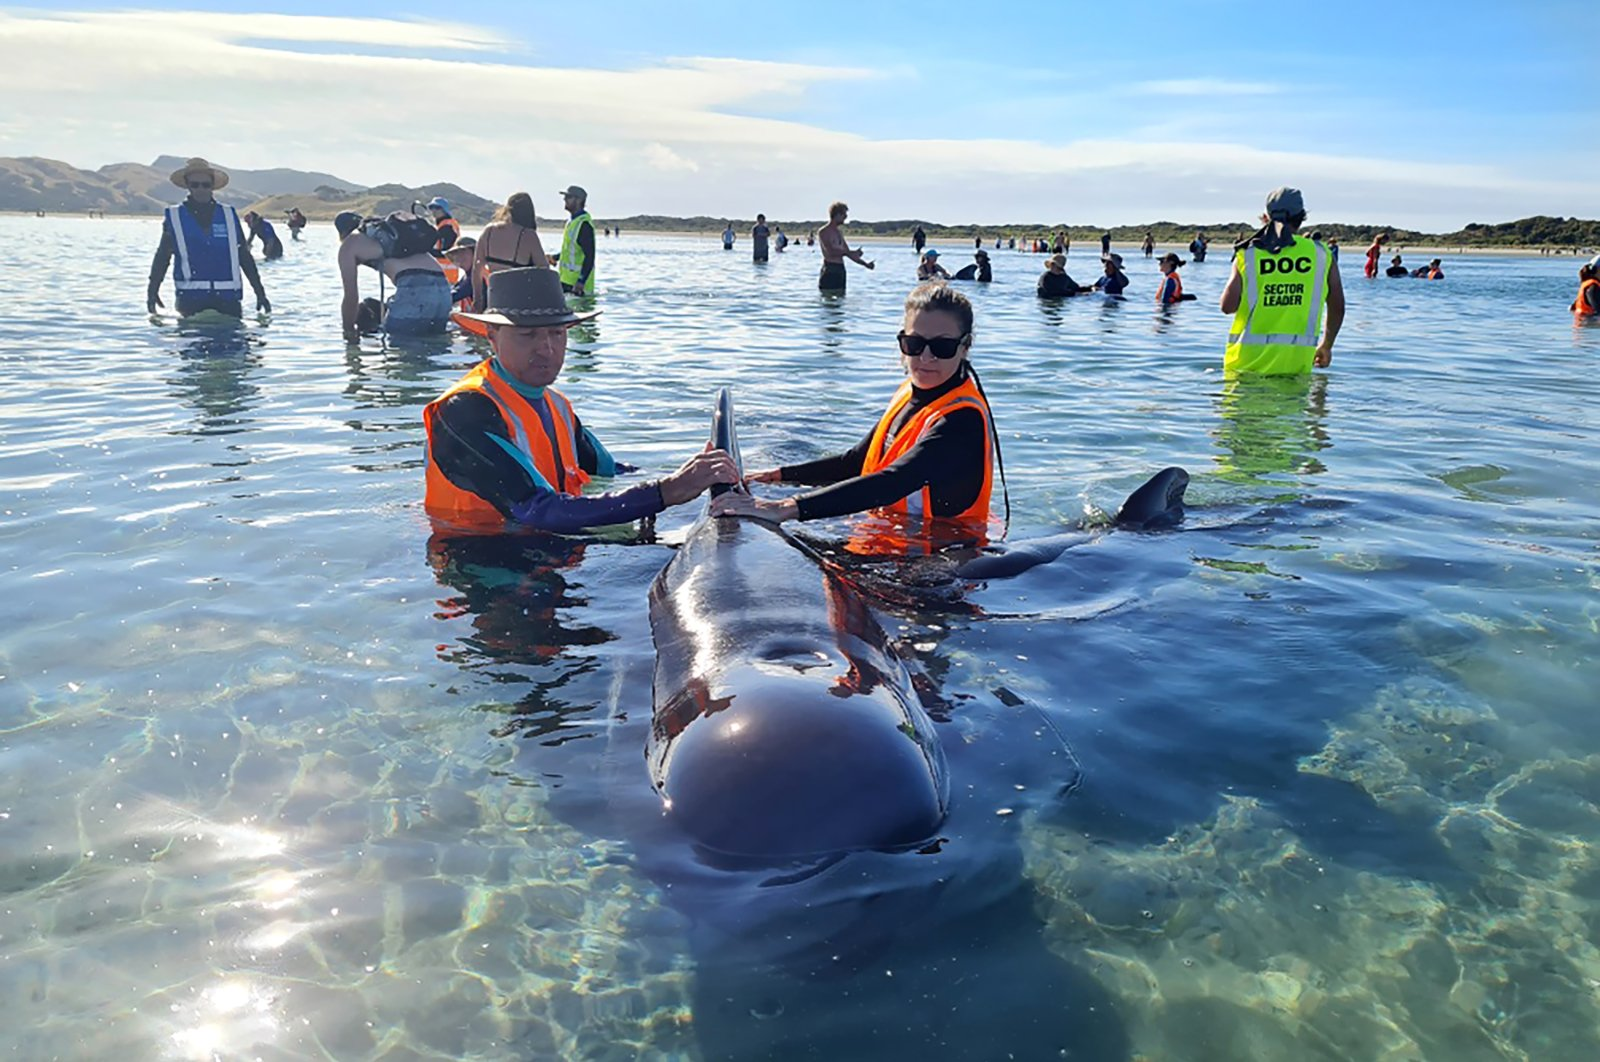 Rescuers work to save pilot whales beached at Farewell Spit at the top of the South Island of New Zealand, Feb. 22, 2021. (Project Jonah via AP)